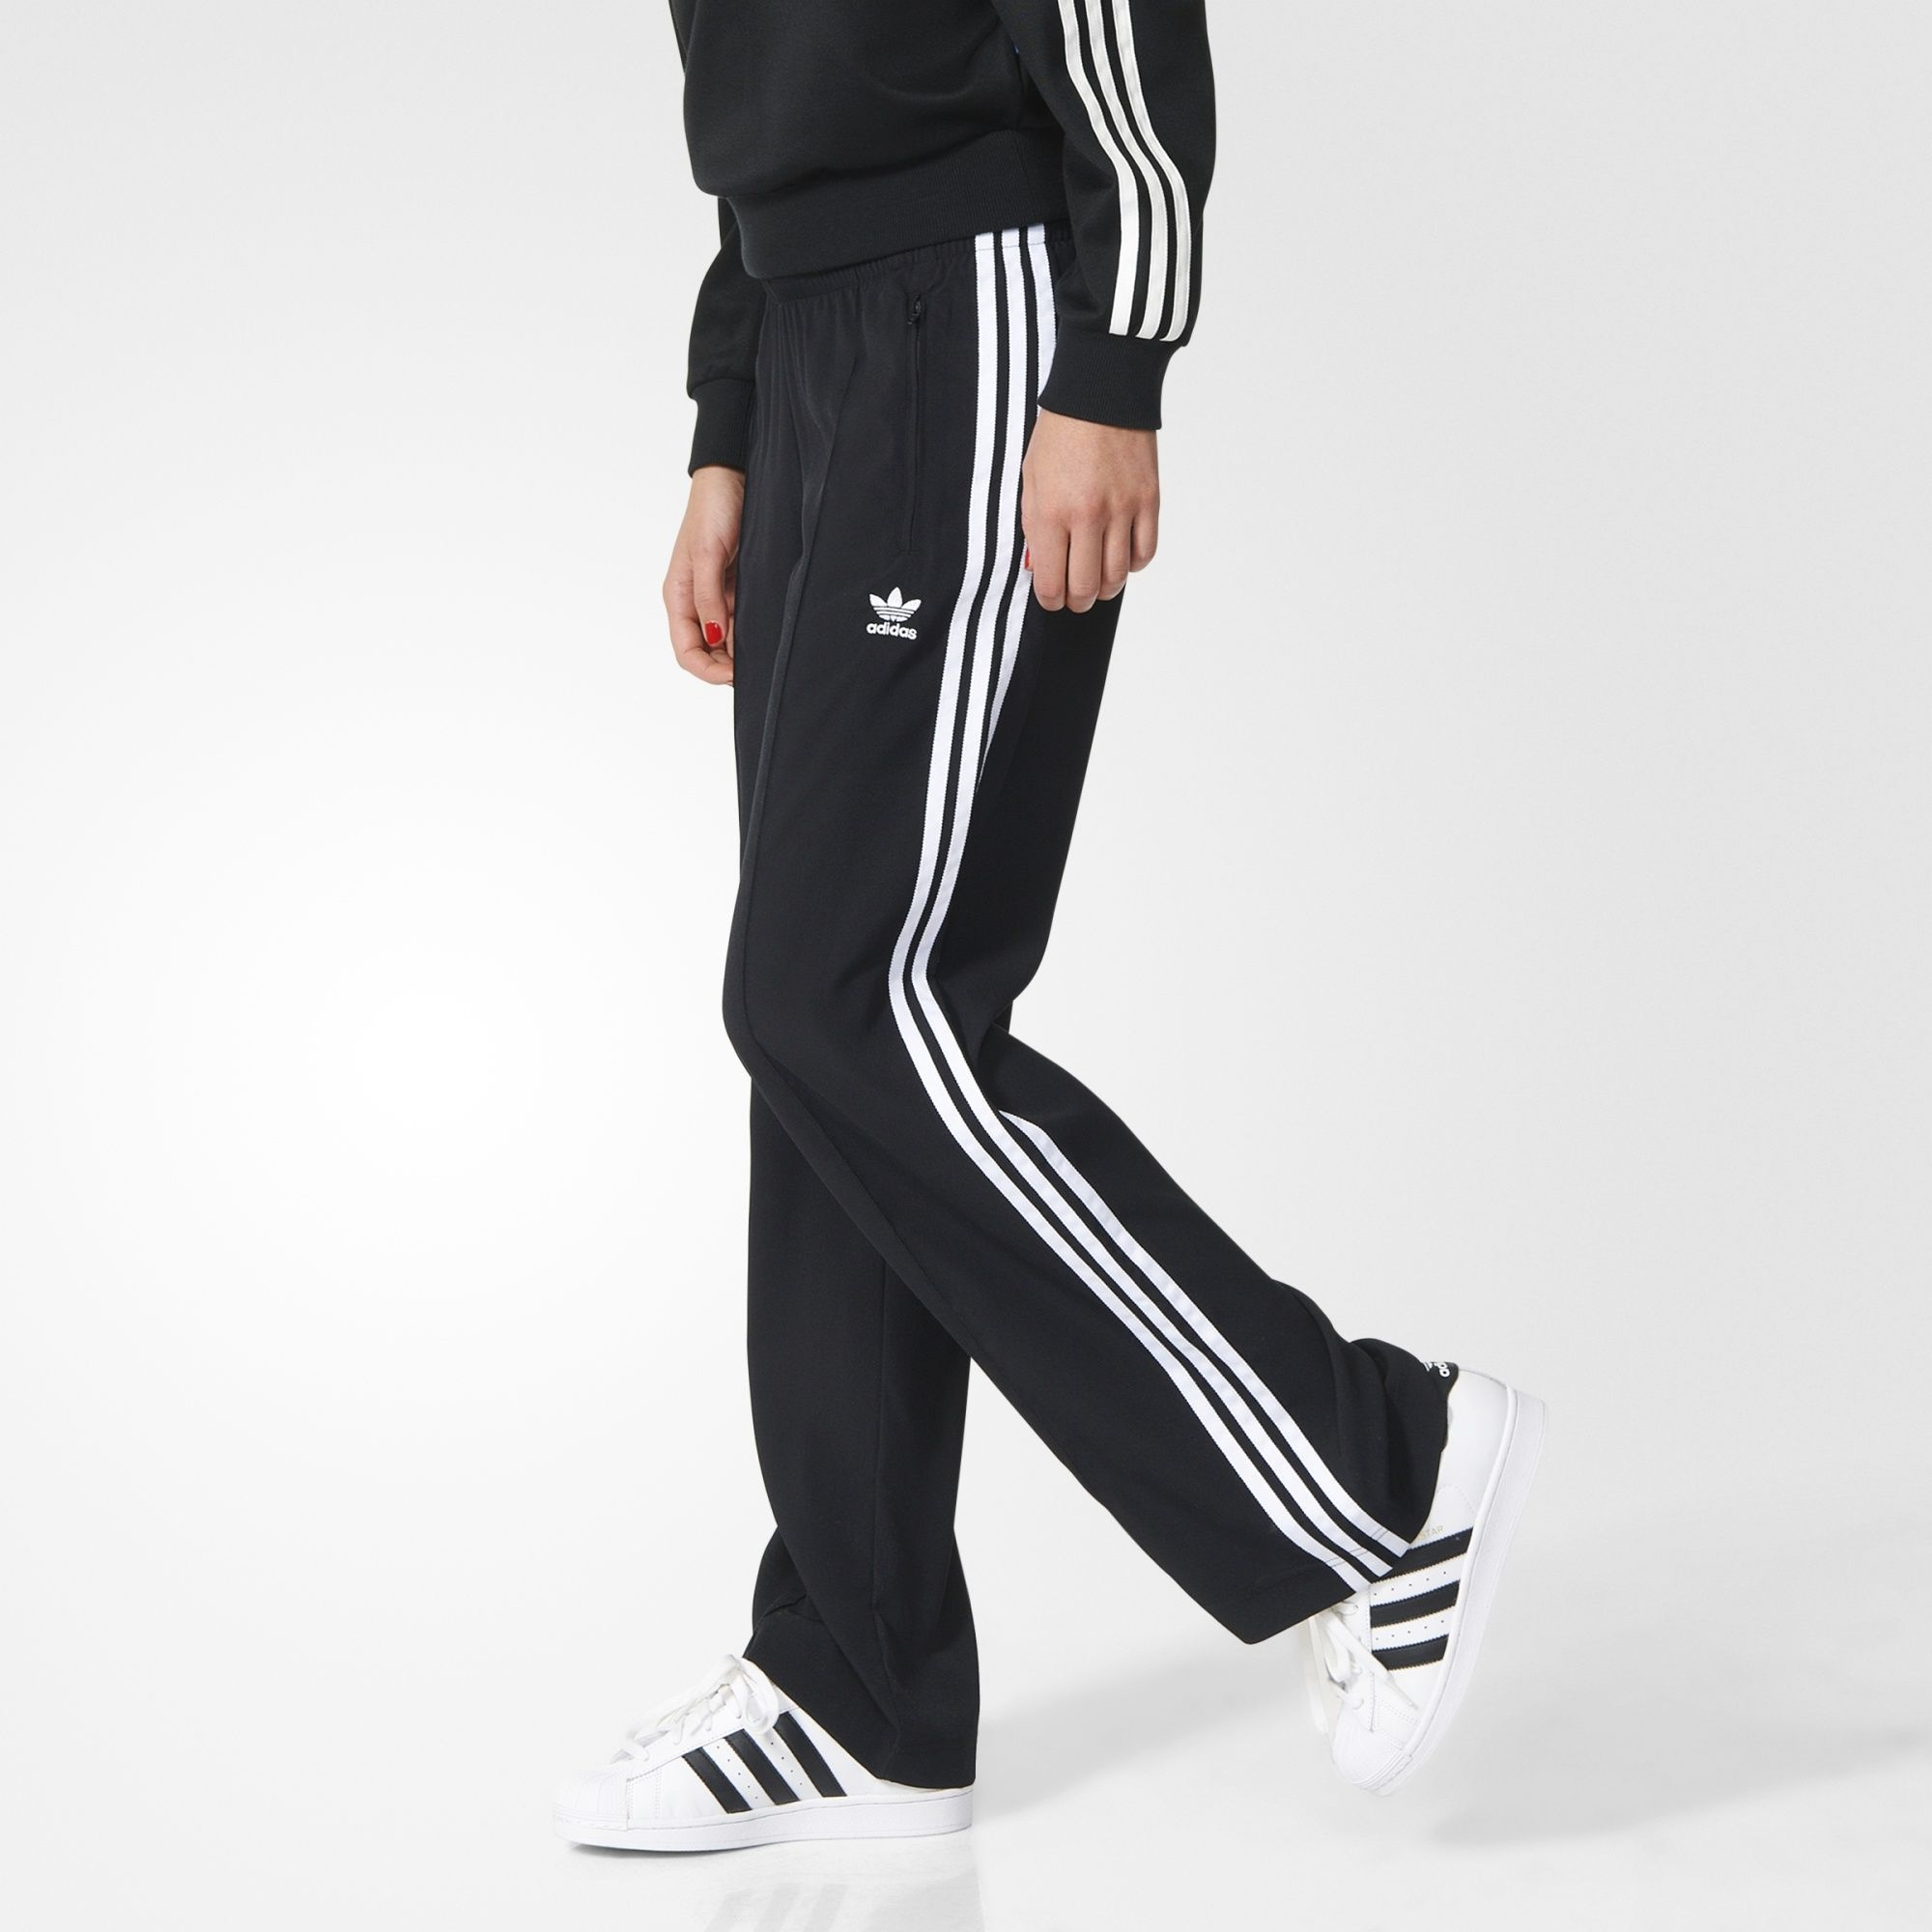 e3410b1f2ed adidas Originals Womens Sailor Track Pants | AZ4105. All sizes listed are  UK. See sizing tab below for conversions.